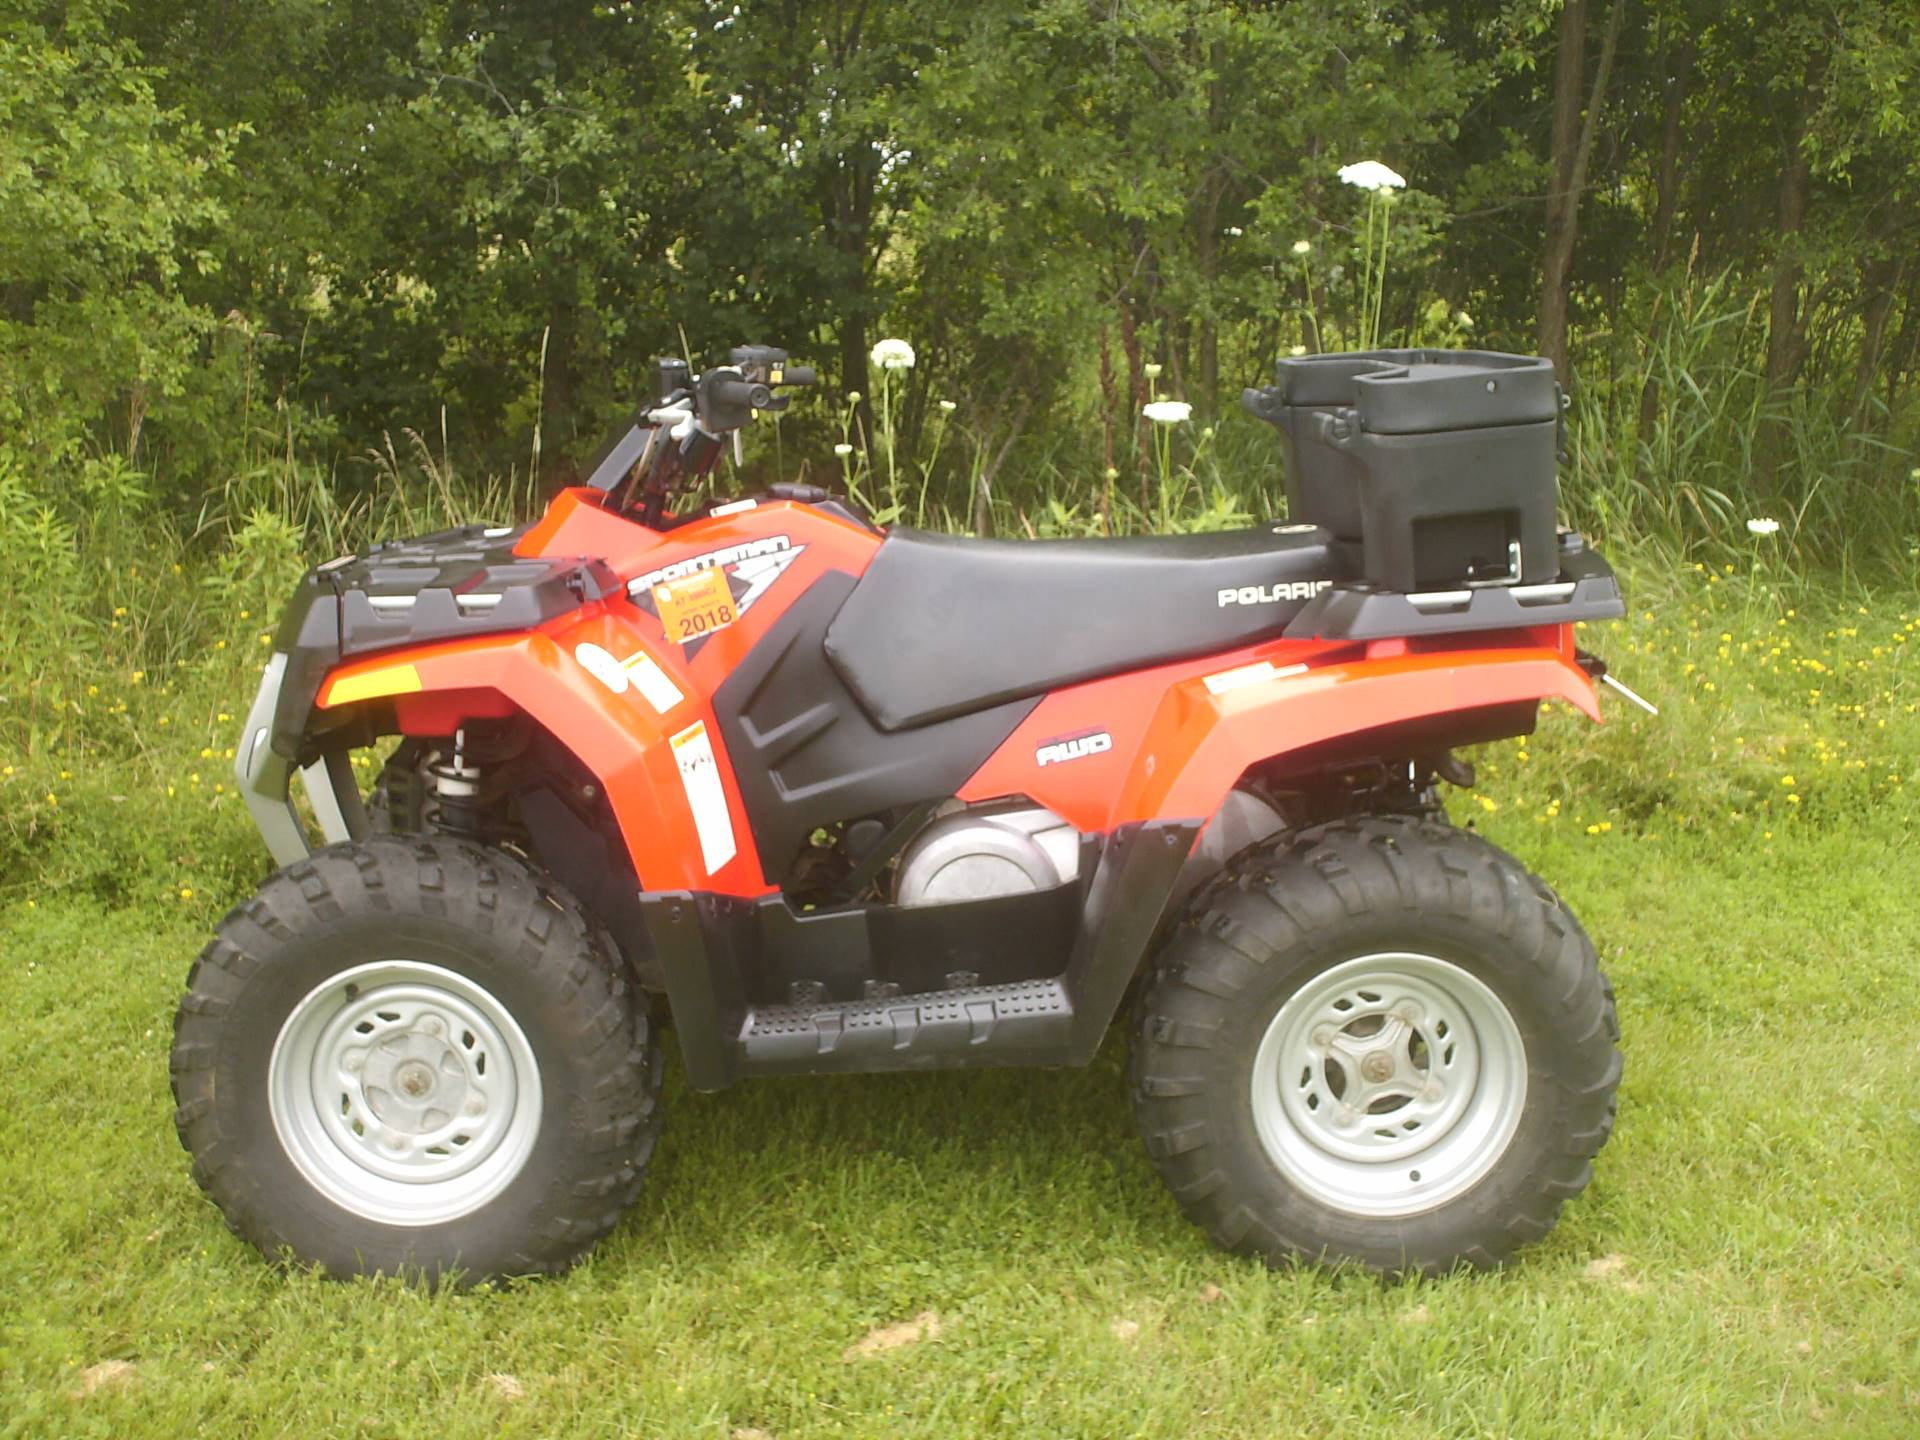 2008 Polaris Sportsman® 400 H.O. in Mukwonago, Wisconsin